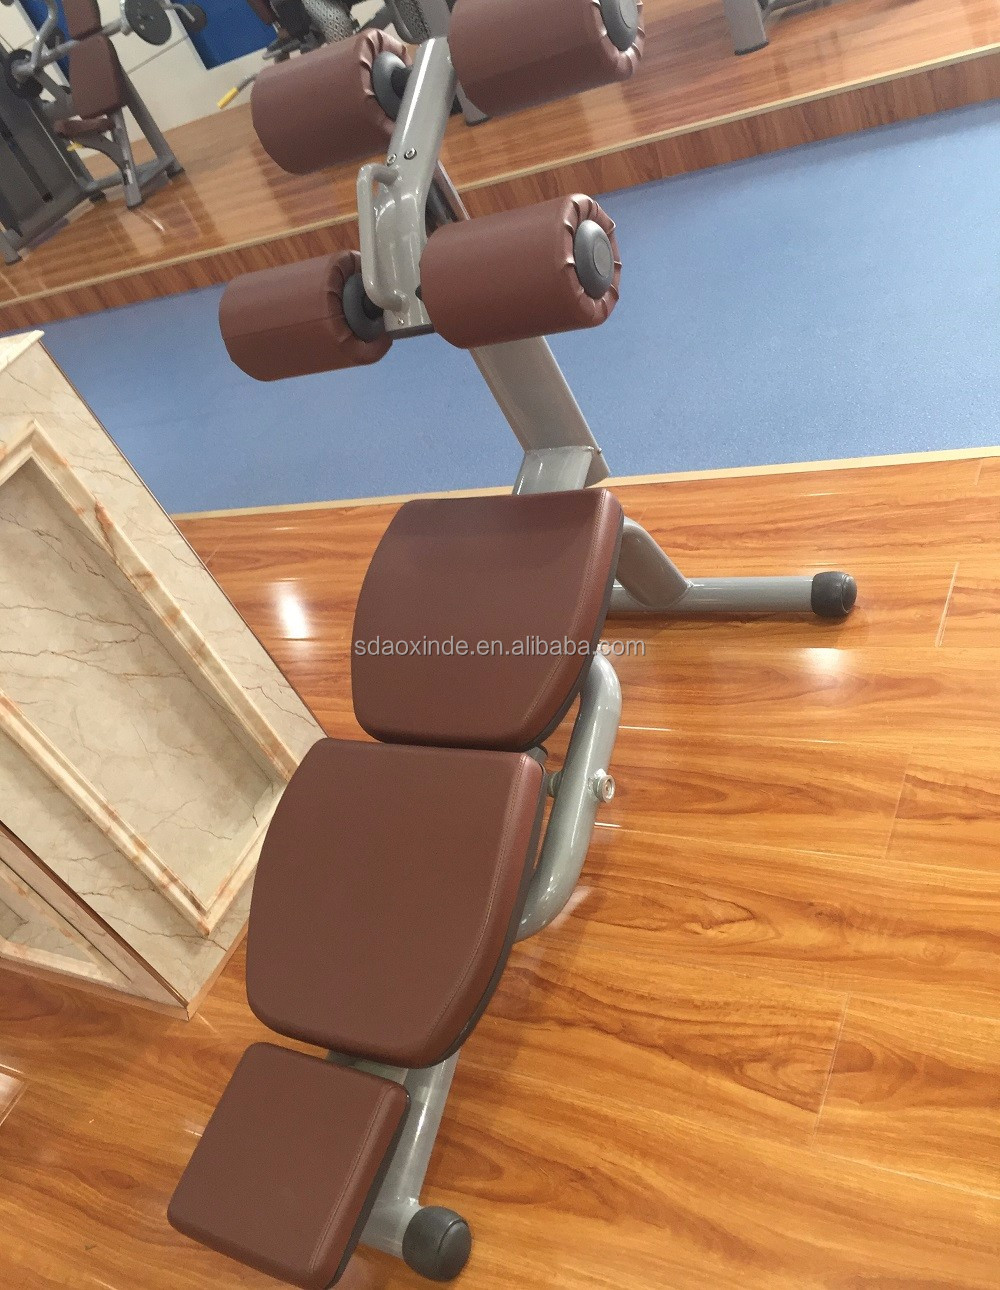 Commercial use gym bench for sale-sit up bench